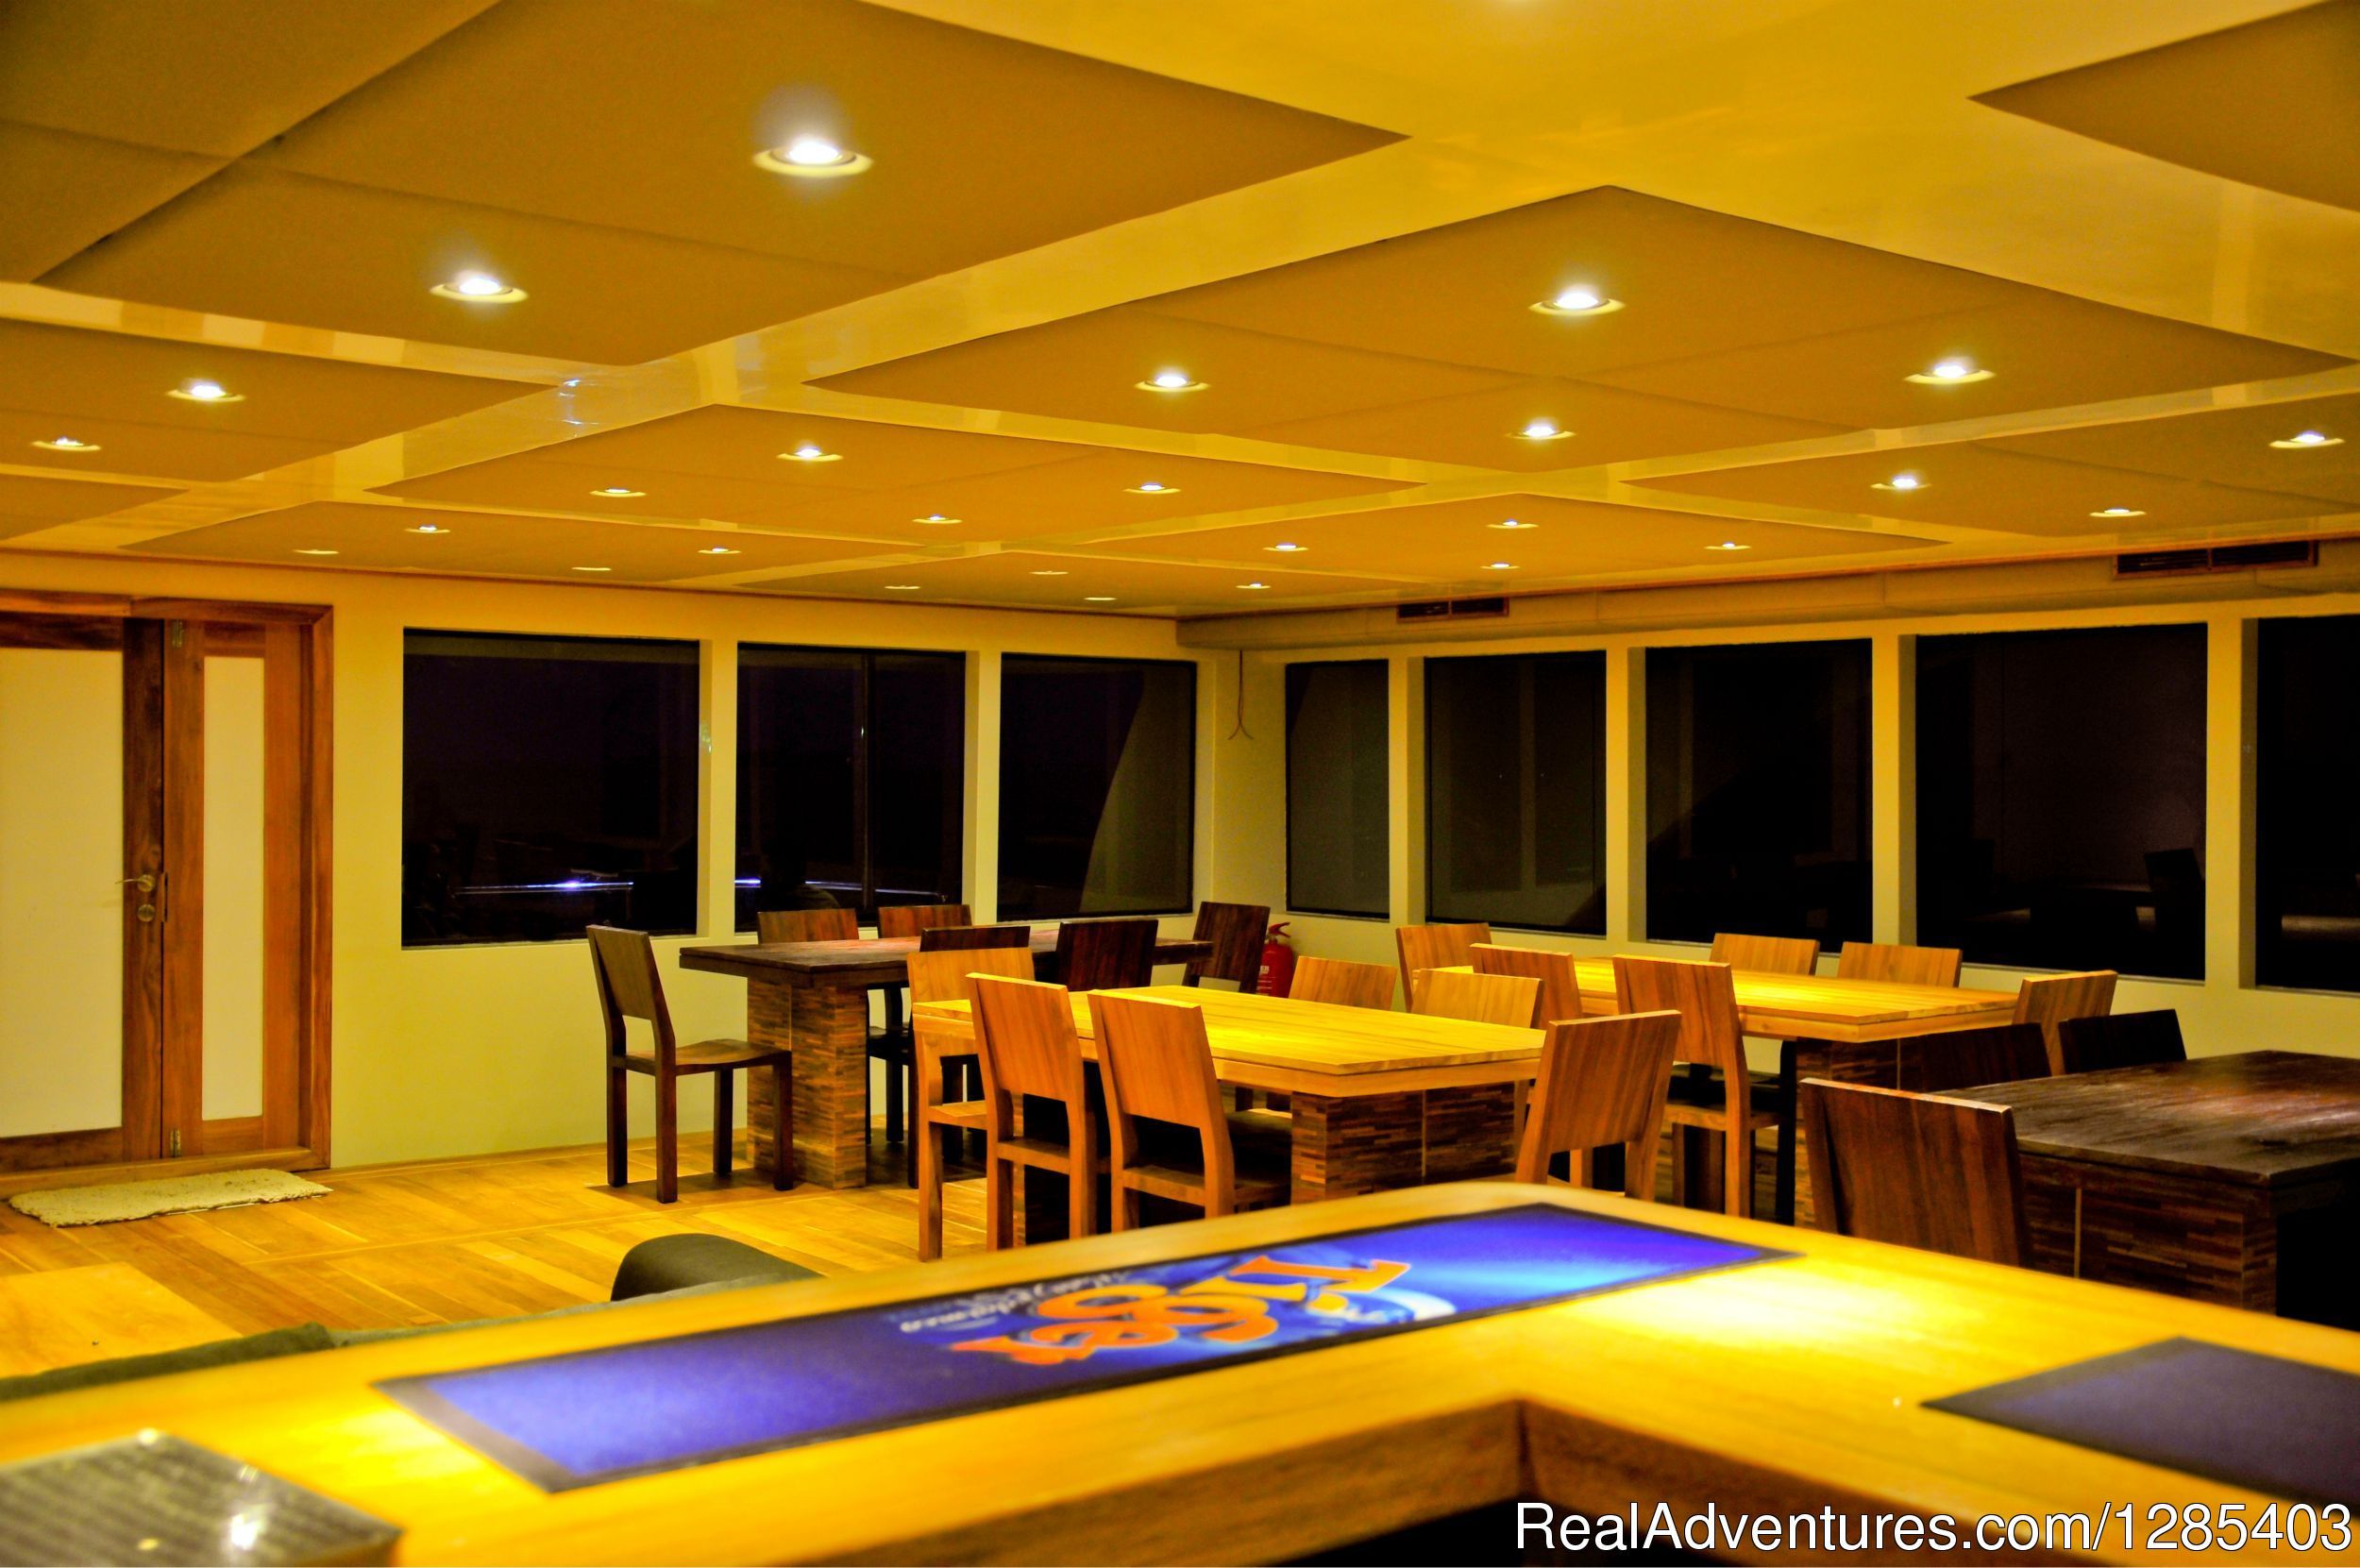 Adora / Dinning area with view from bar counter | Image #17/23 | Adora Best Luxury Crusie